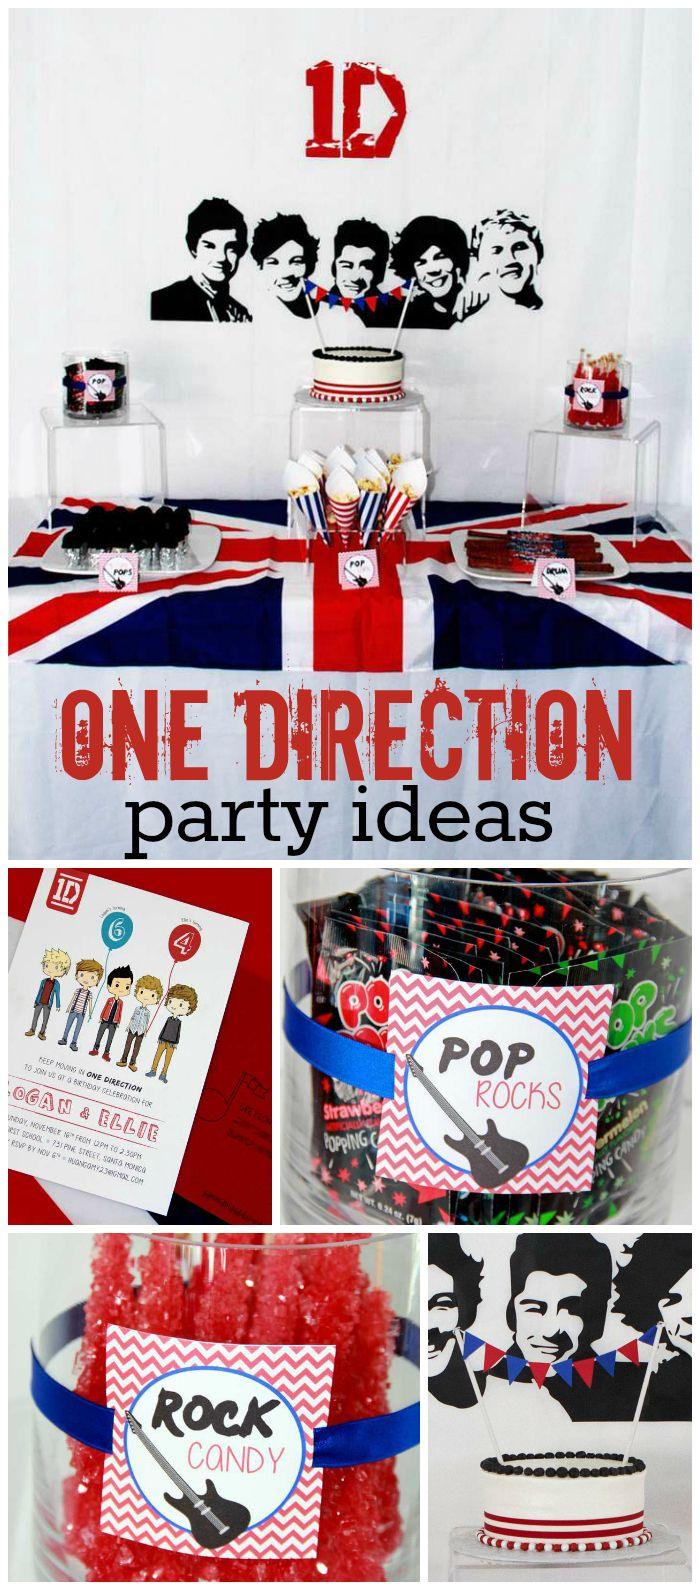 A One Direction birthday party for a boy and a girl with fun rockstar food ideas and decorations! See more party planning ideas at CatchMyParty.com!